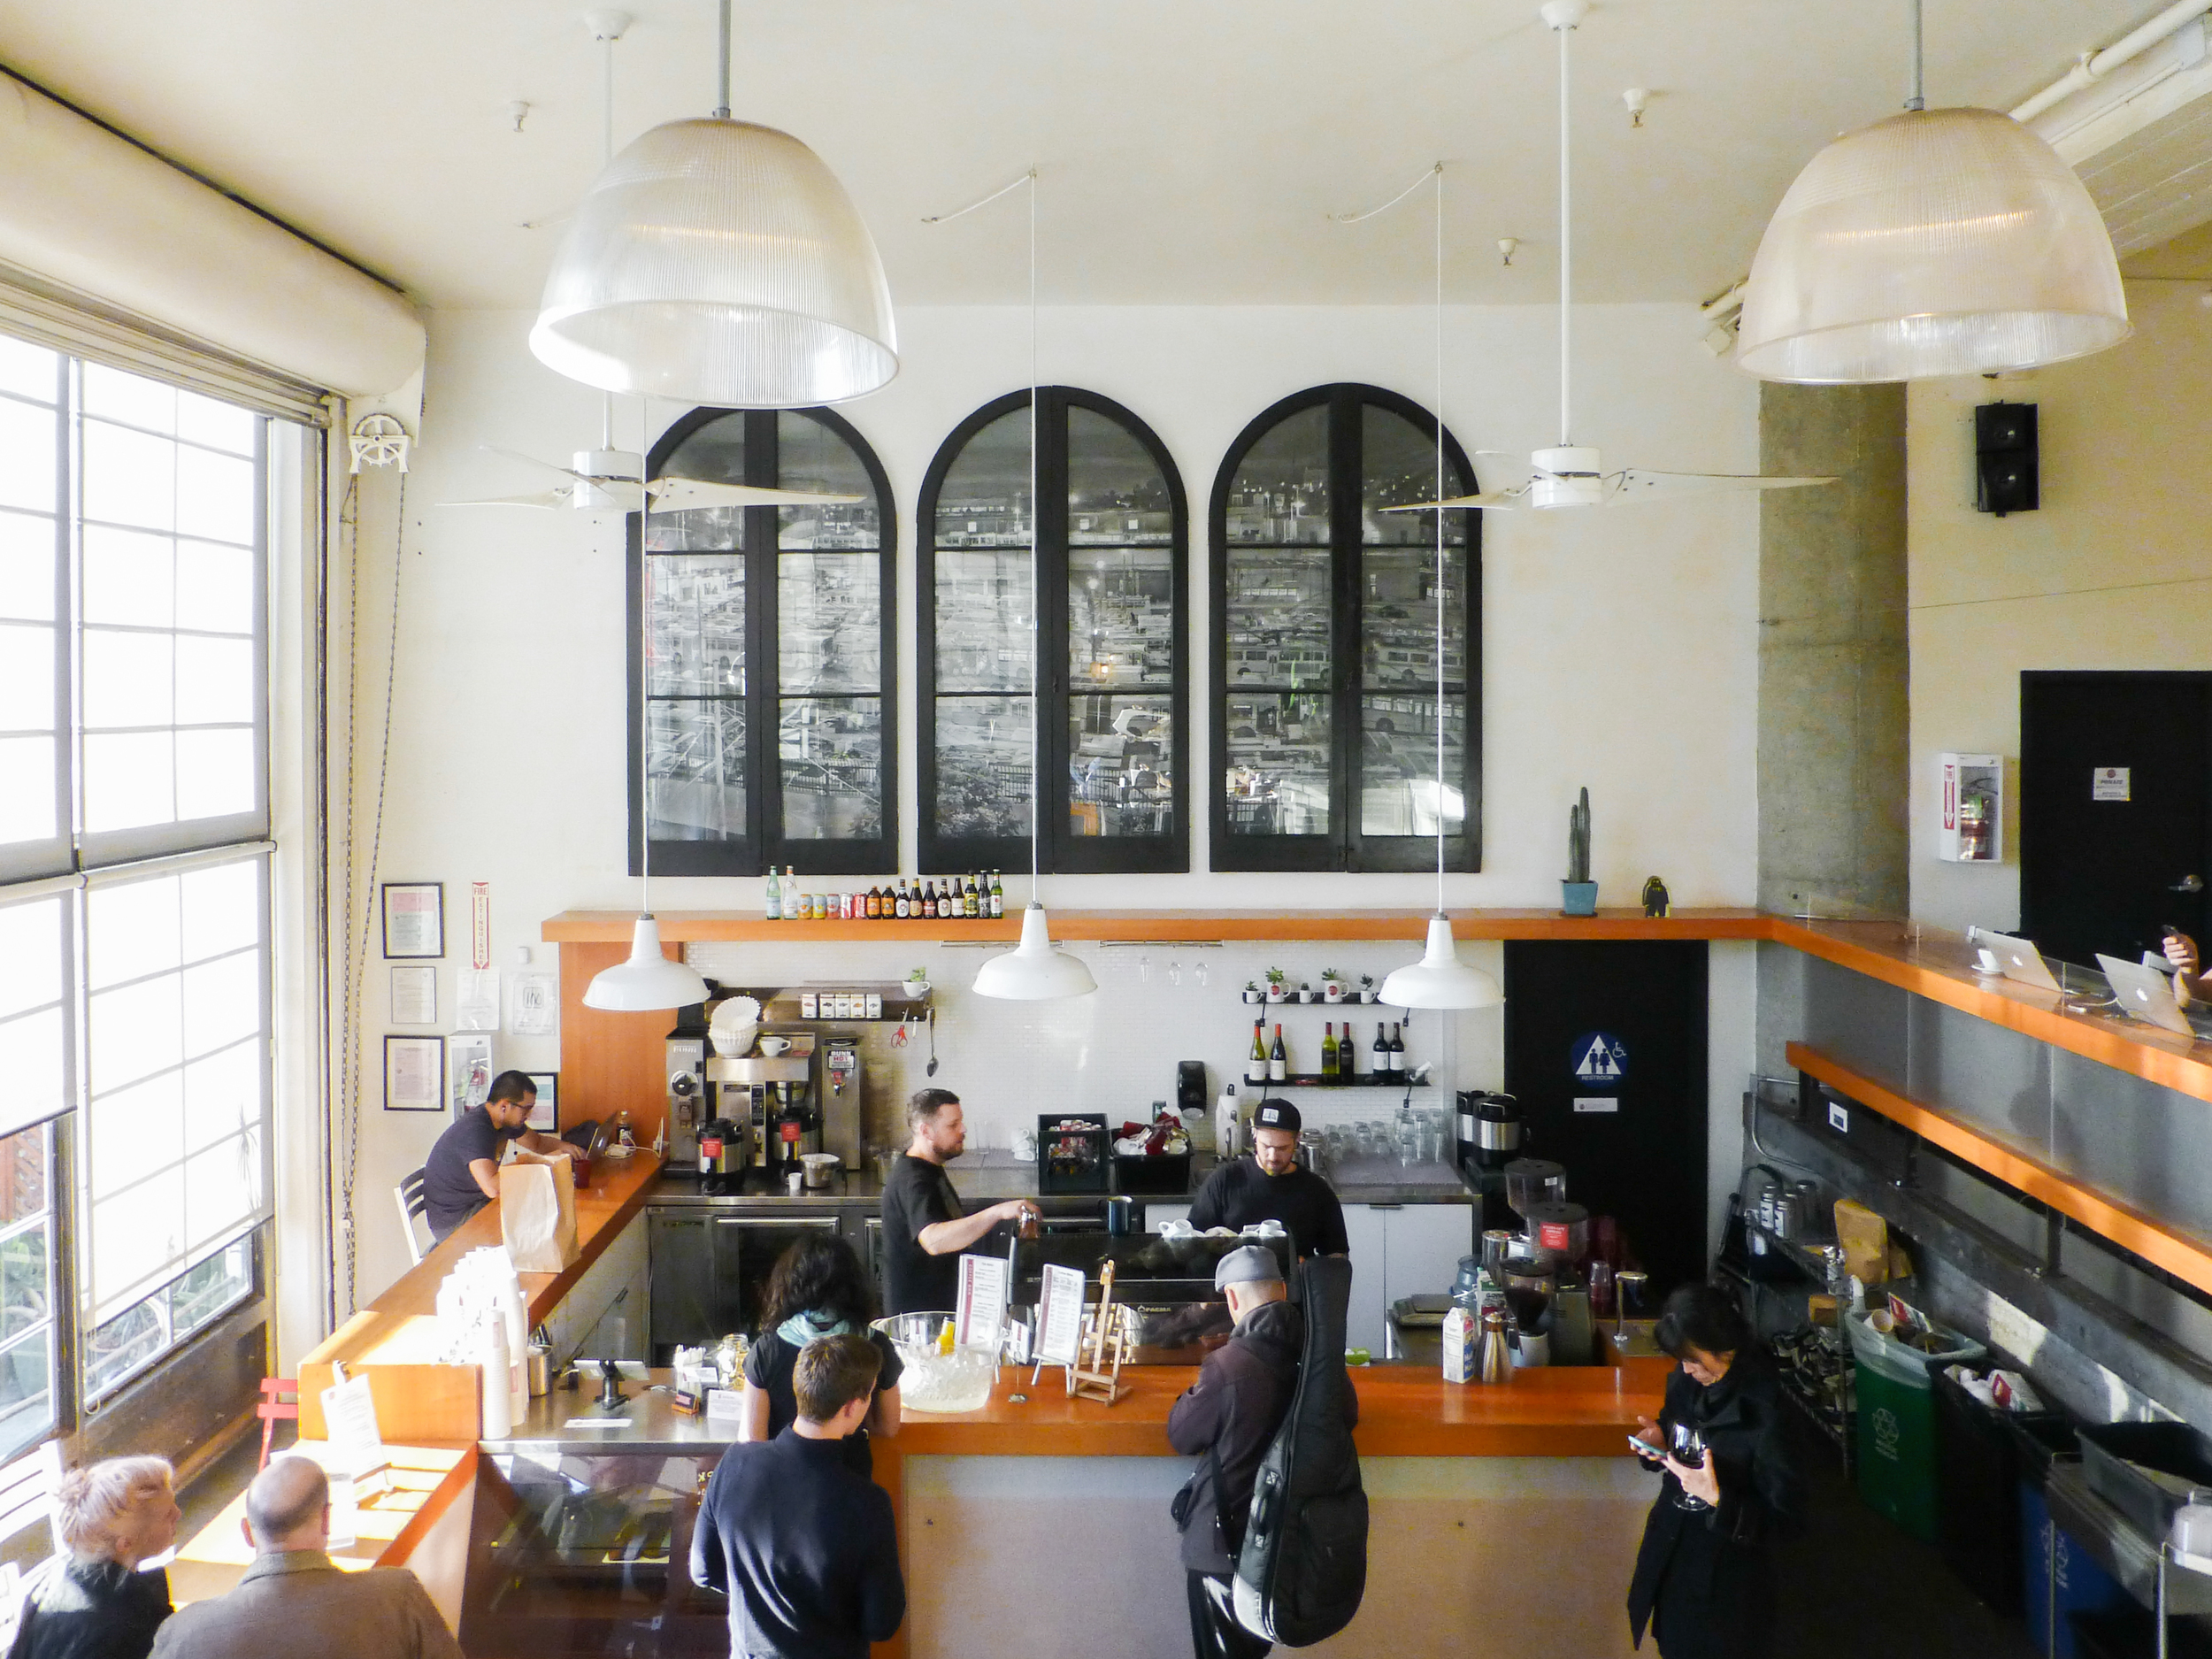 Housed in a sleek, modern setting, Coffee Bar on Bryant Street serves light bites and coffee made from locally roasted beans.